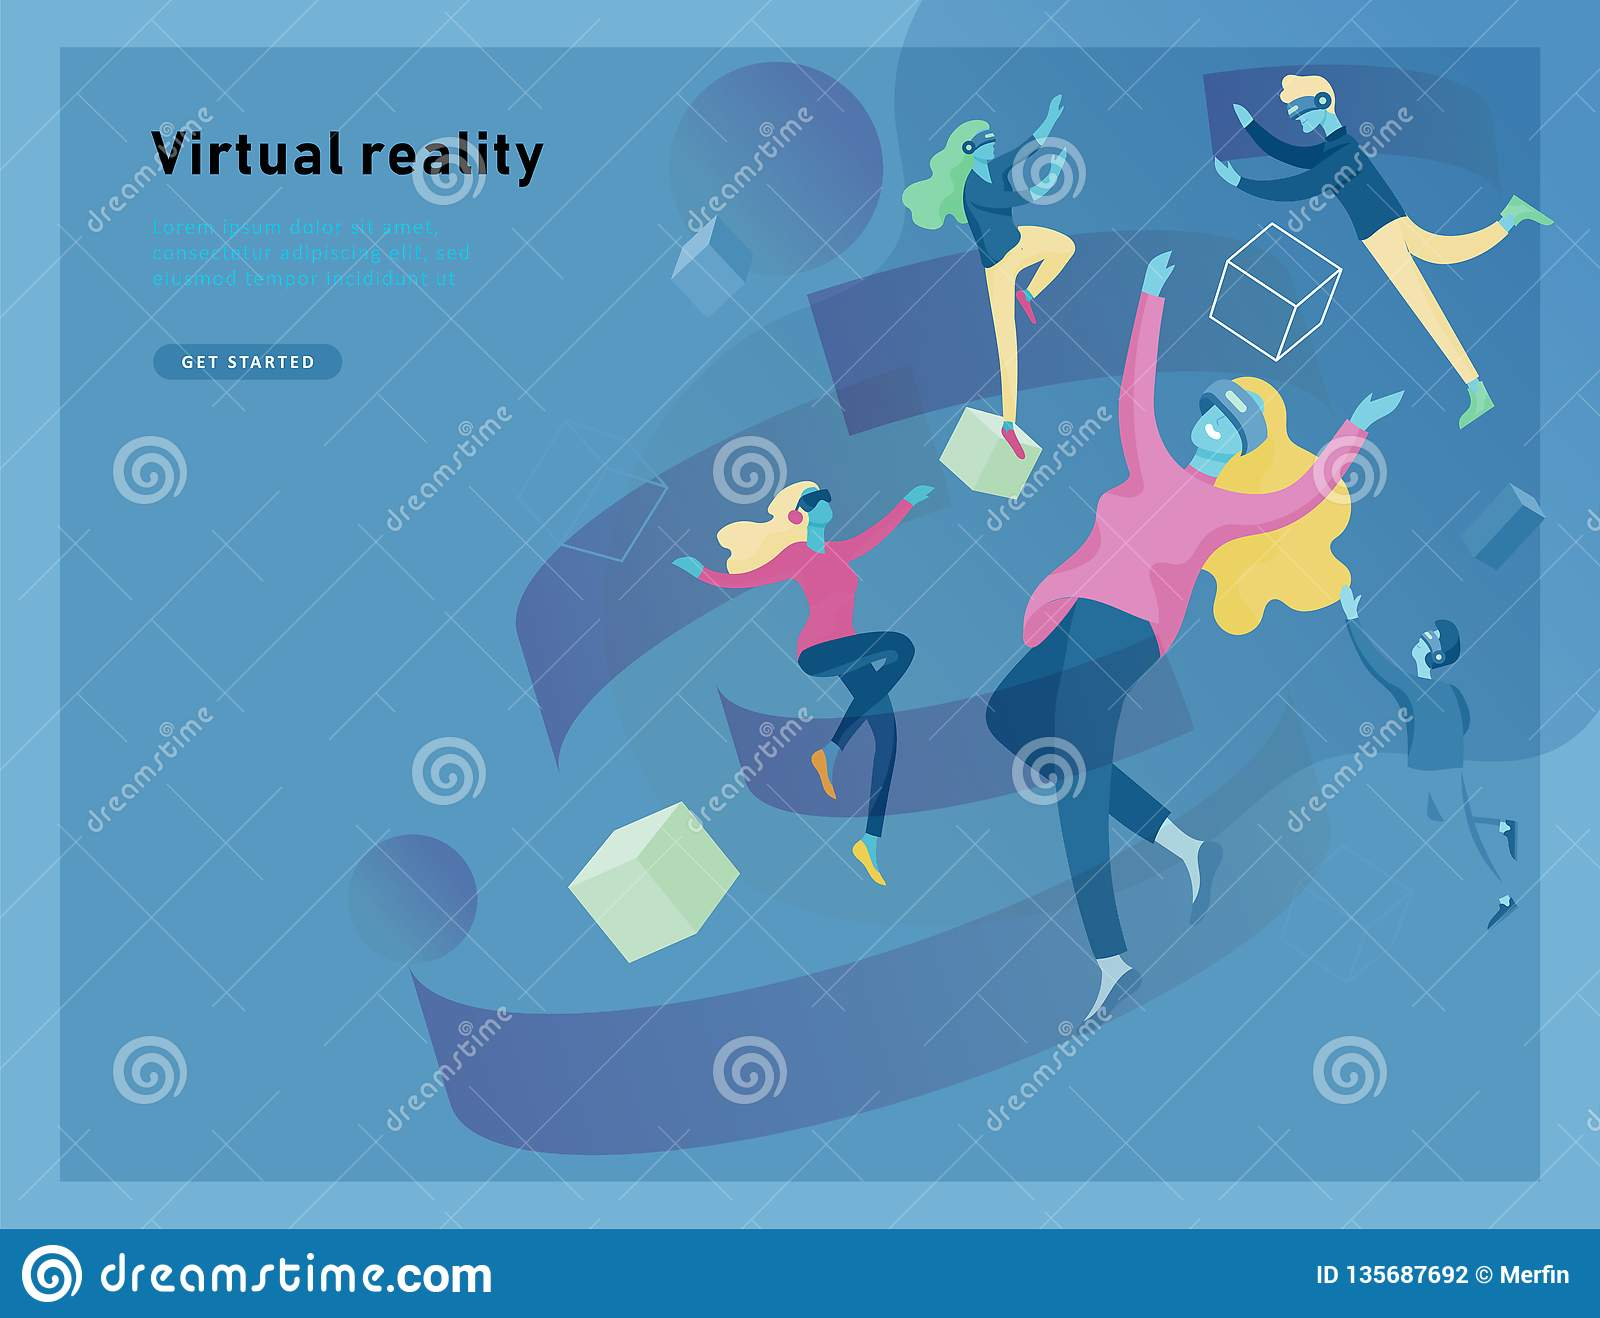 Virtual Augmented Reality Glasses Concept With People Learning And Entertaining. Landing Page ...